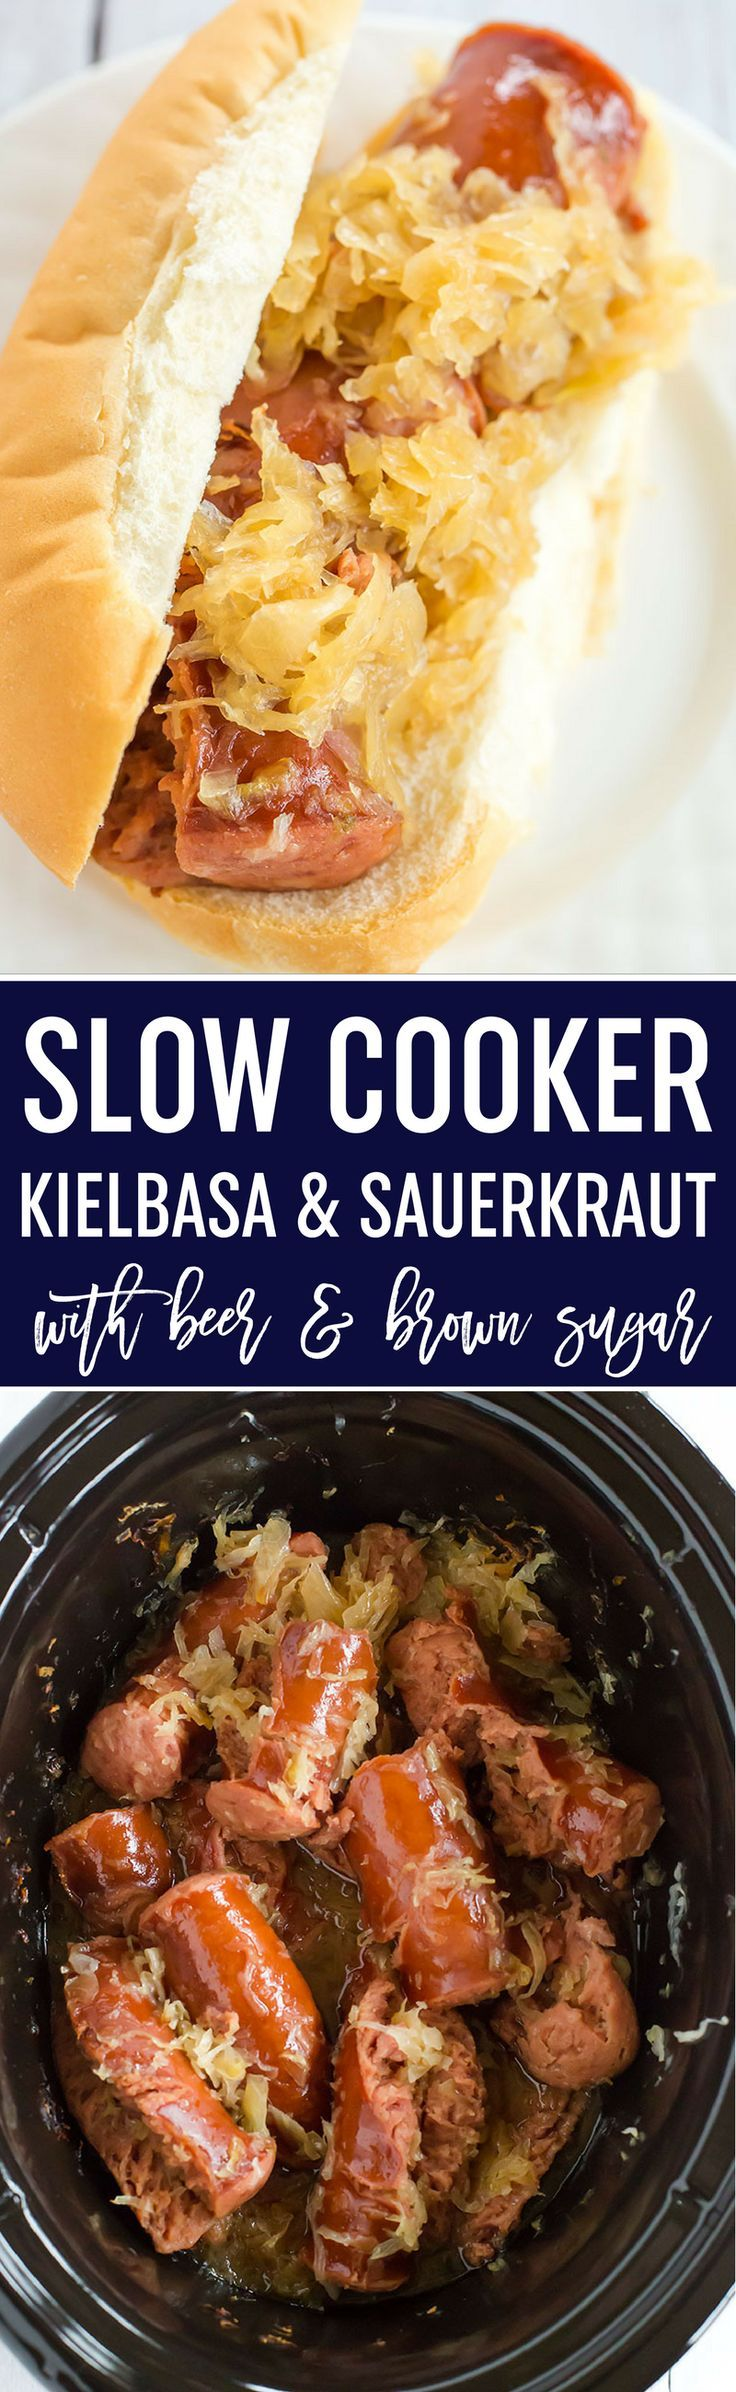 Slow Cooker Kielbasa and Sauerkraut is made with just the addition of beer and brown sugar - easy, delicious and perfect for parties! via /browneyedbaker/